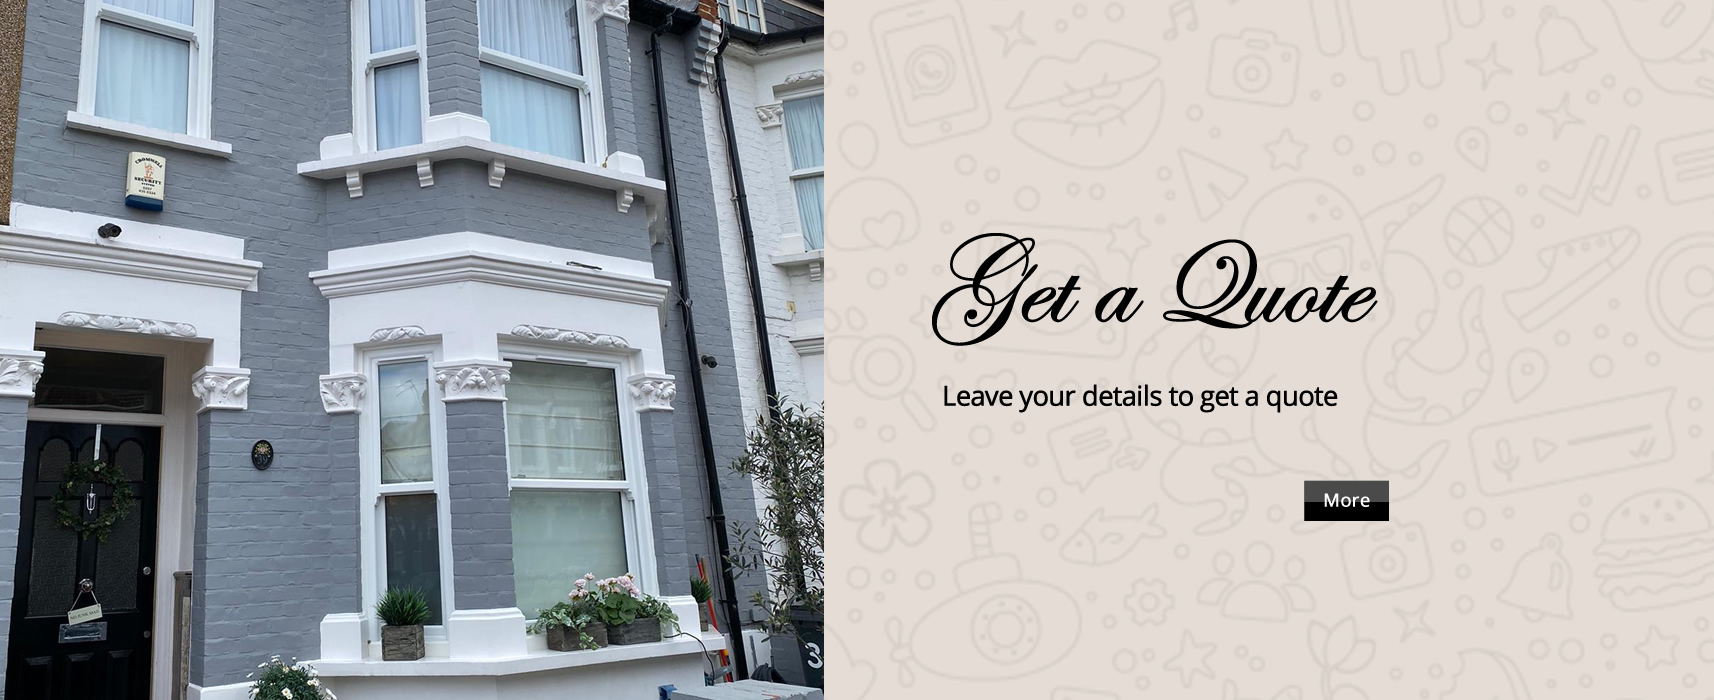 we now offer virtual window quotes for our London customers so we don't have to visit your property to give you an in principle price